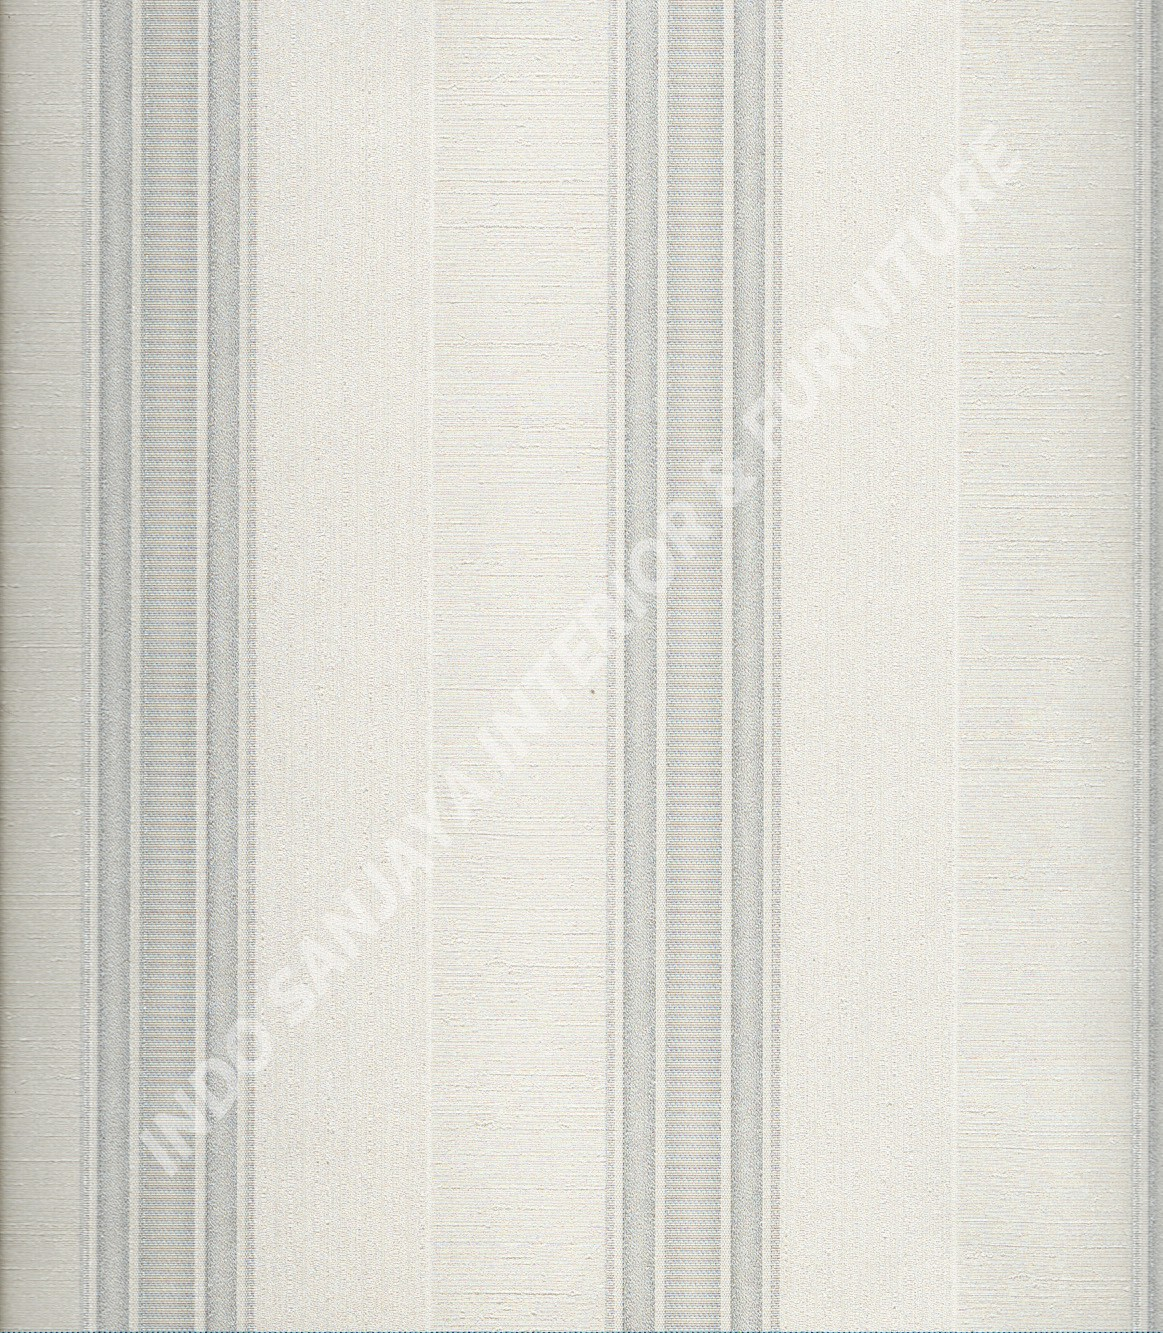 wallpaper   Wallpaper Garis 87073:87073 corak  warna